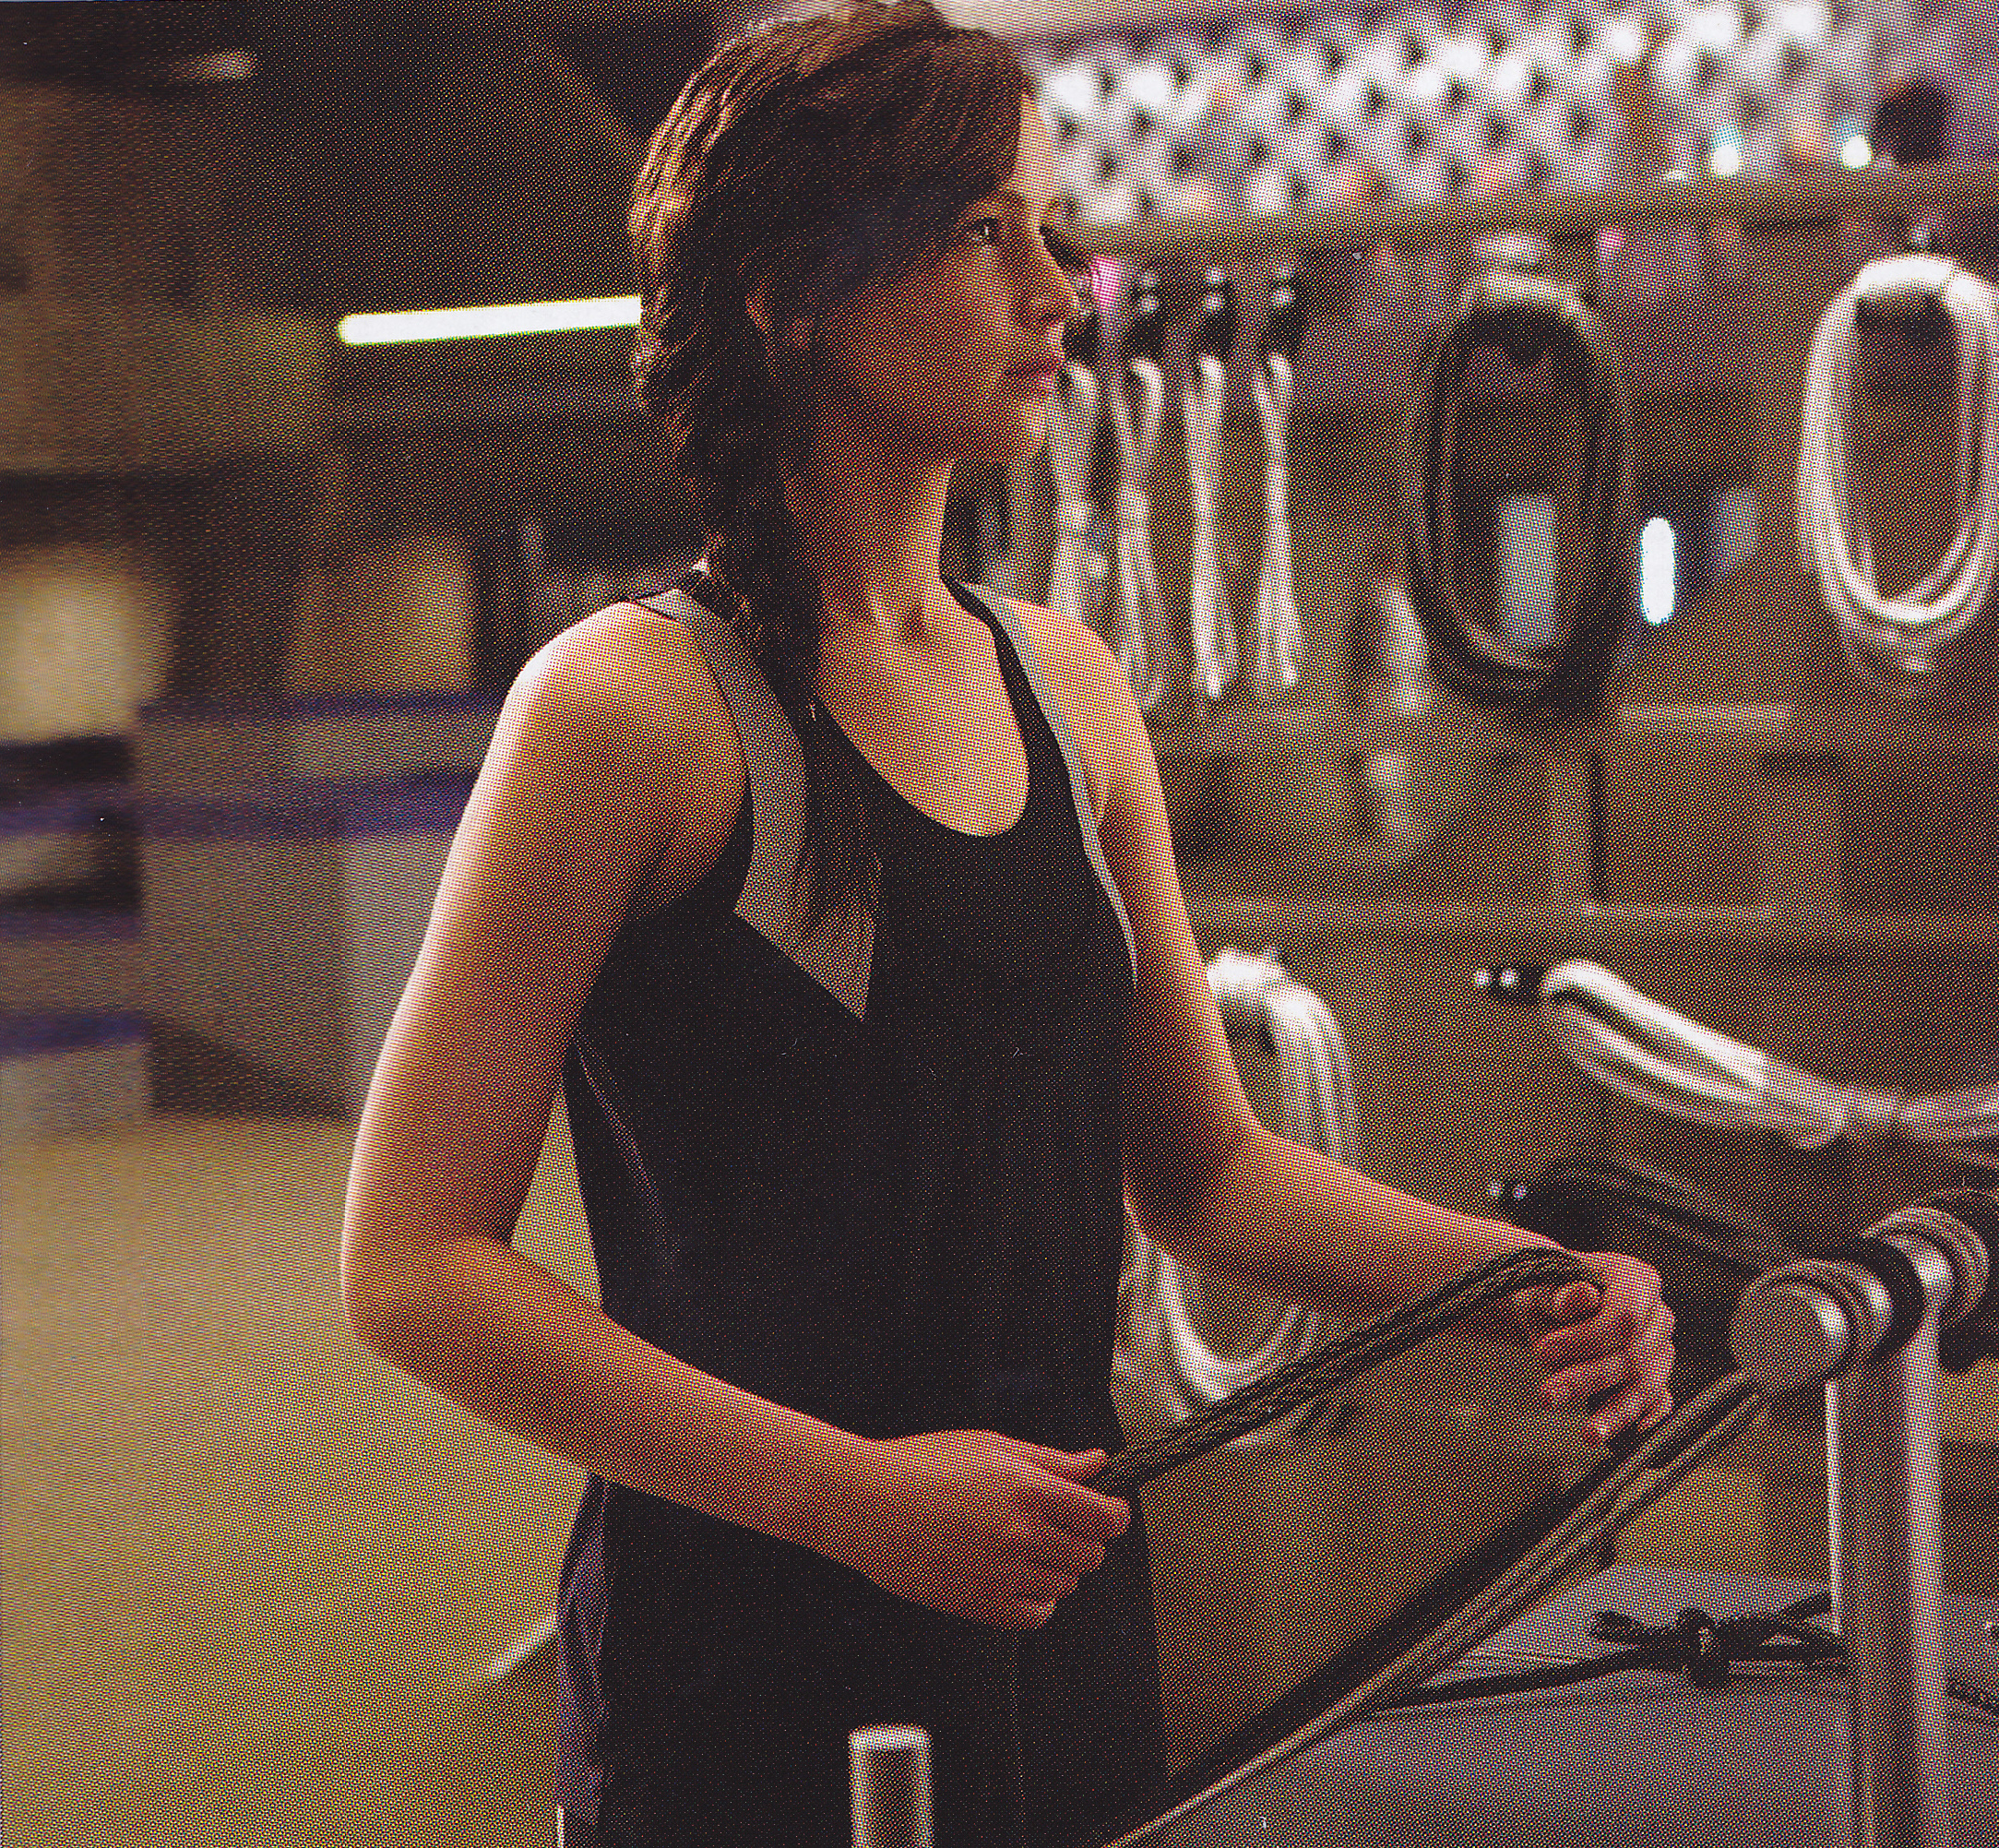 Scans From The Catching Fire Ilrated Movie Companion